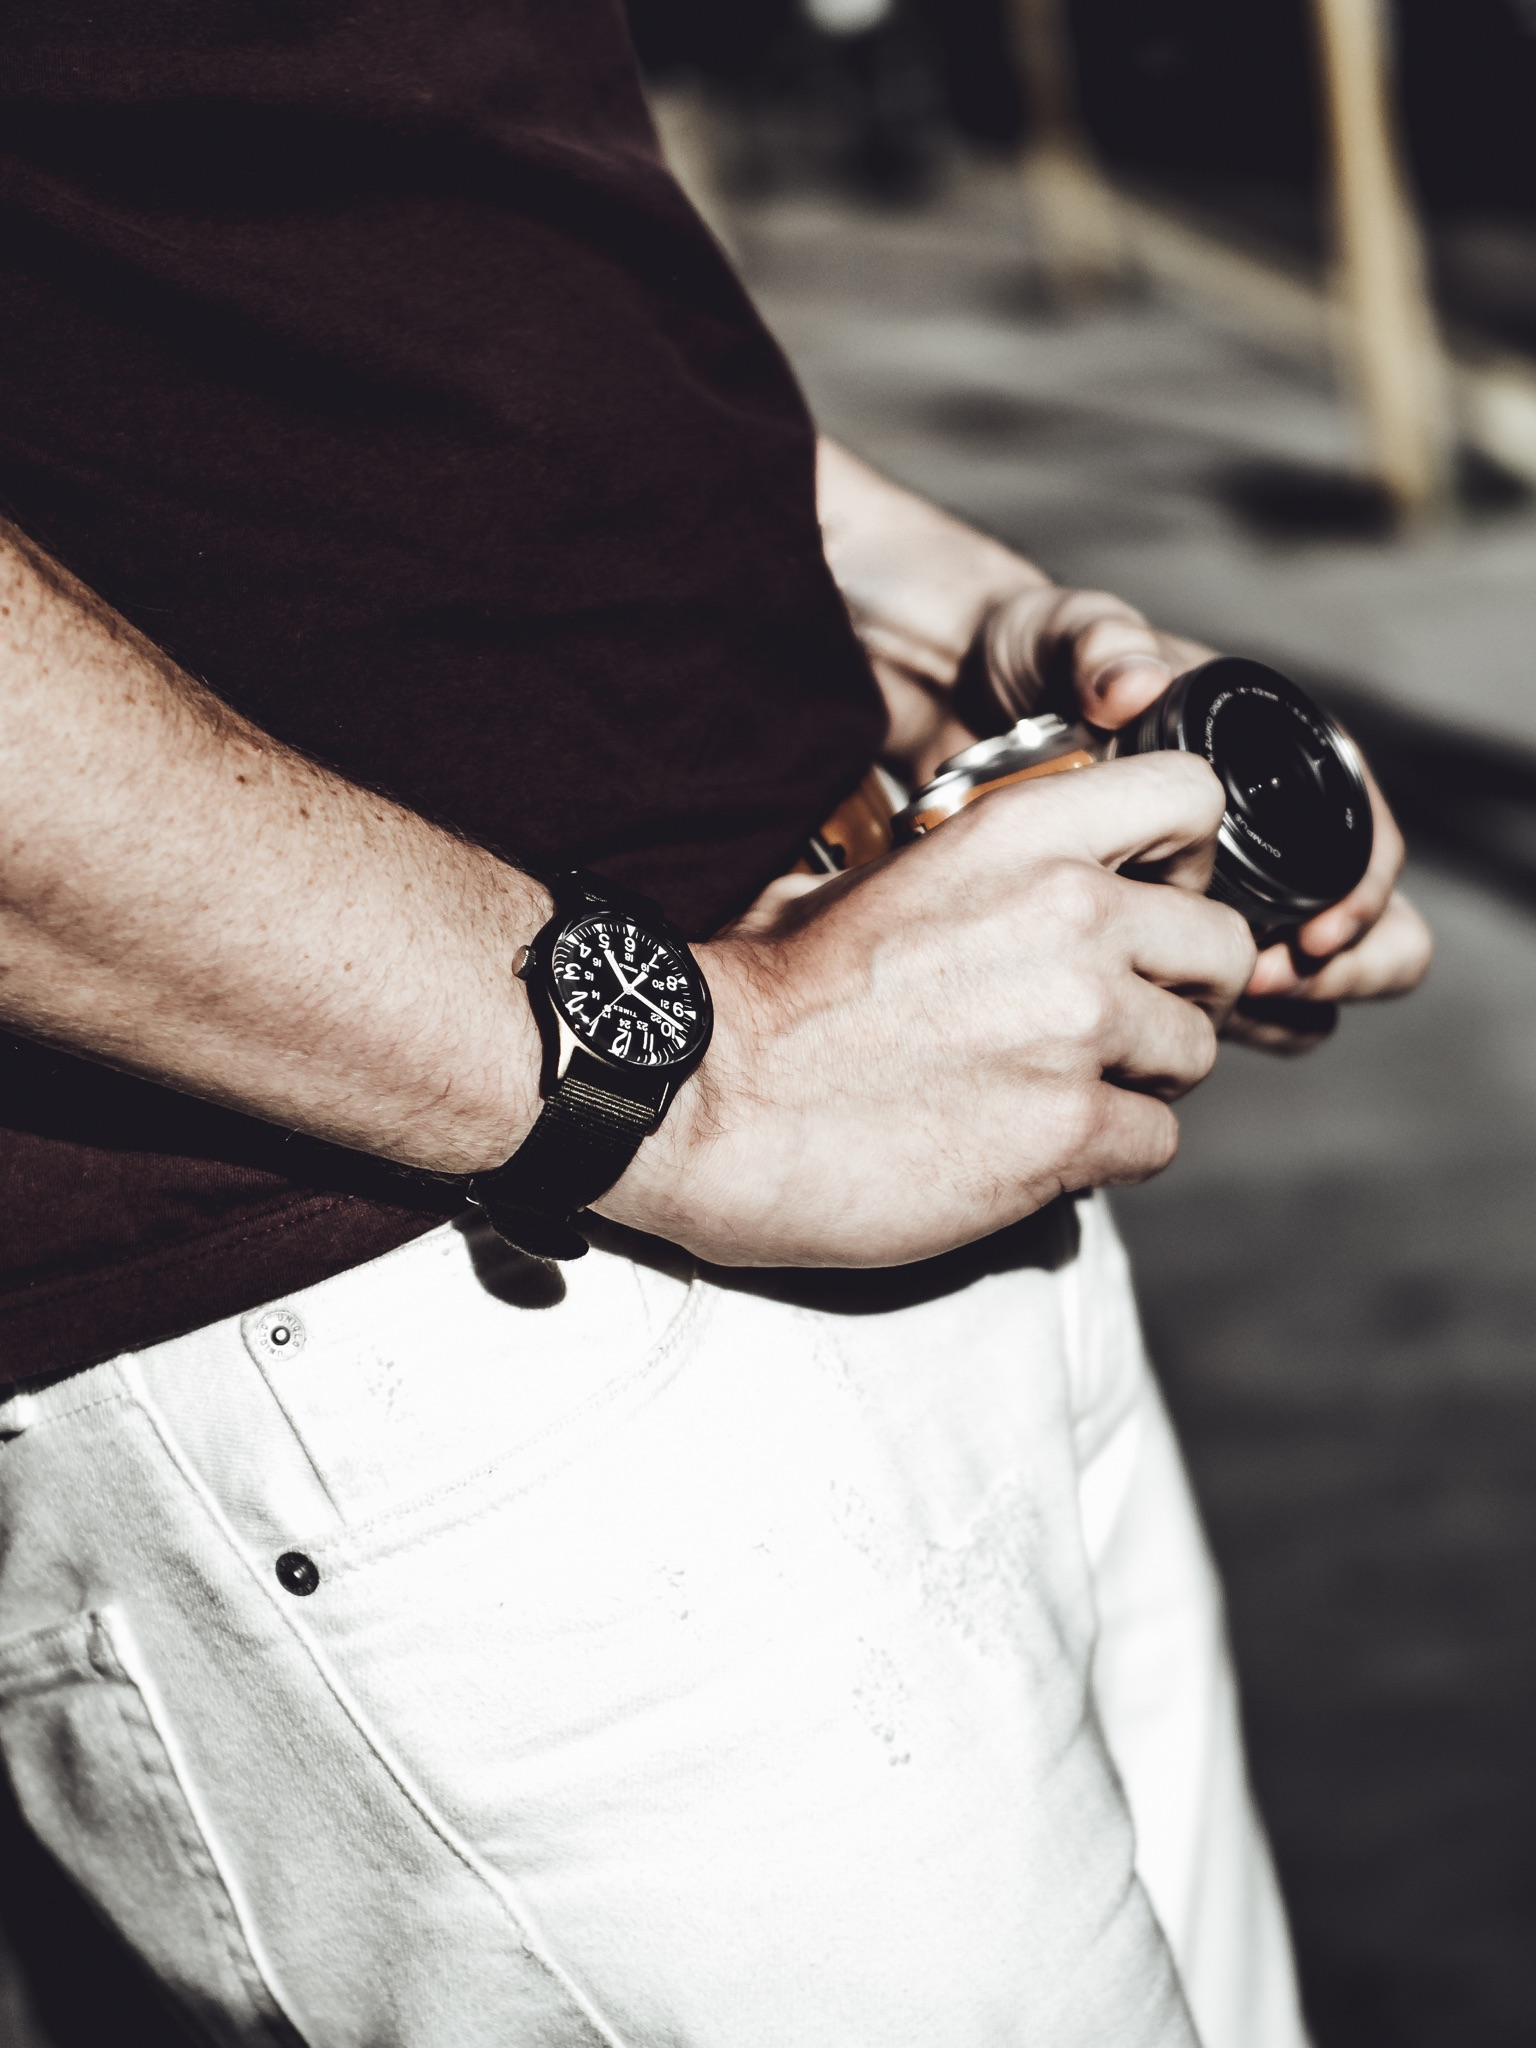 Why I'm Choosing to Wear My Apple Watch Less Smart Watch Wearable Tech Fashion Style Timex Olympus PEN E-PL8